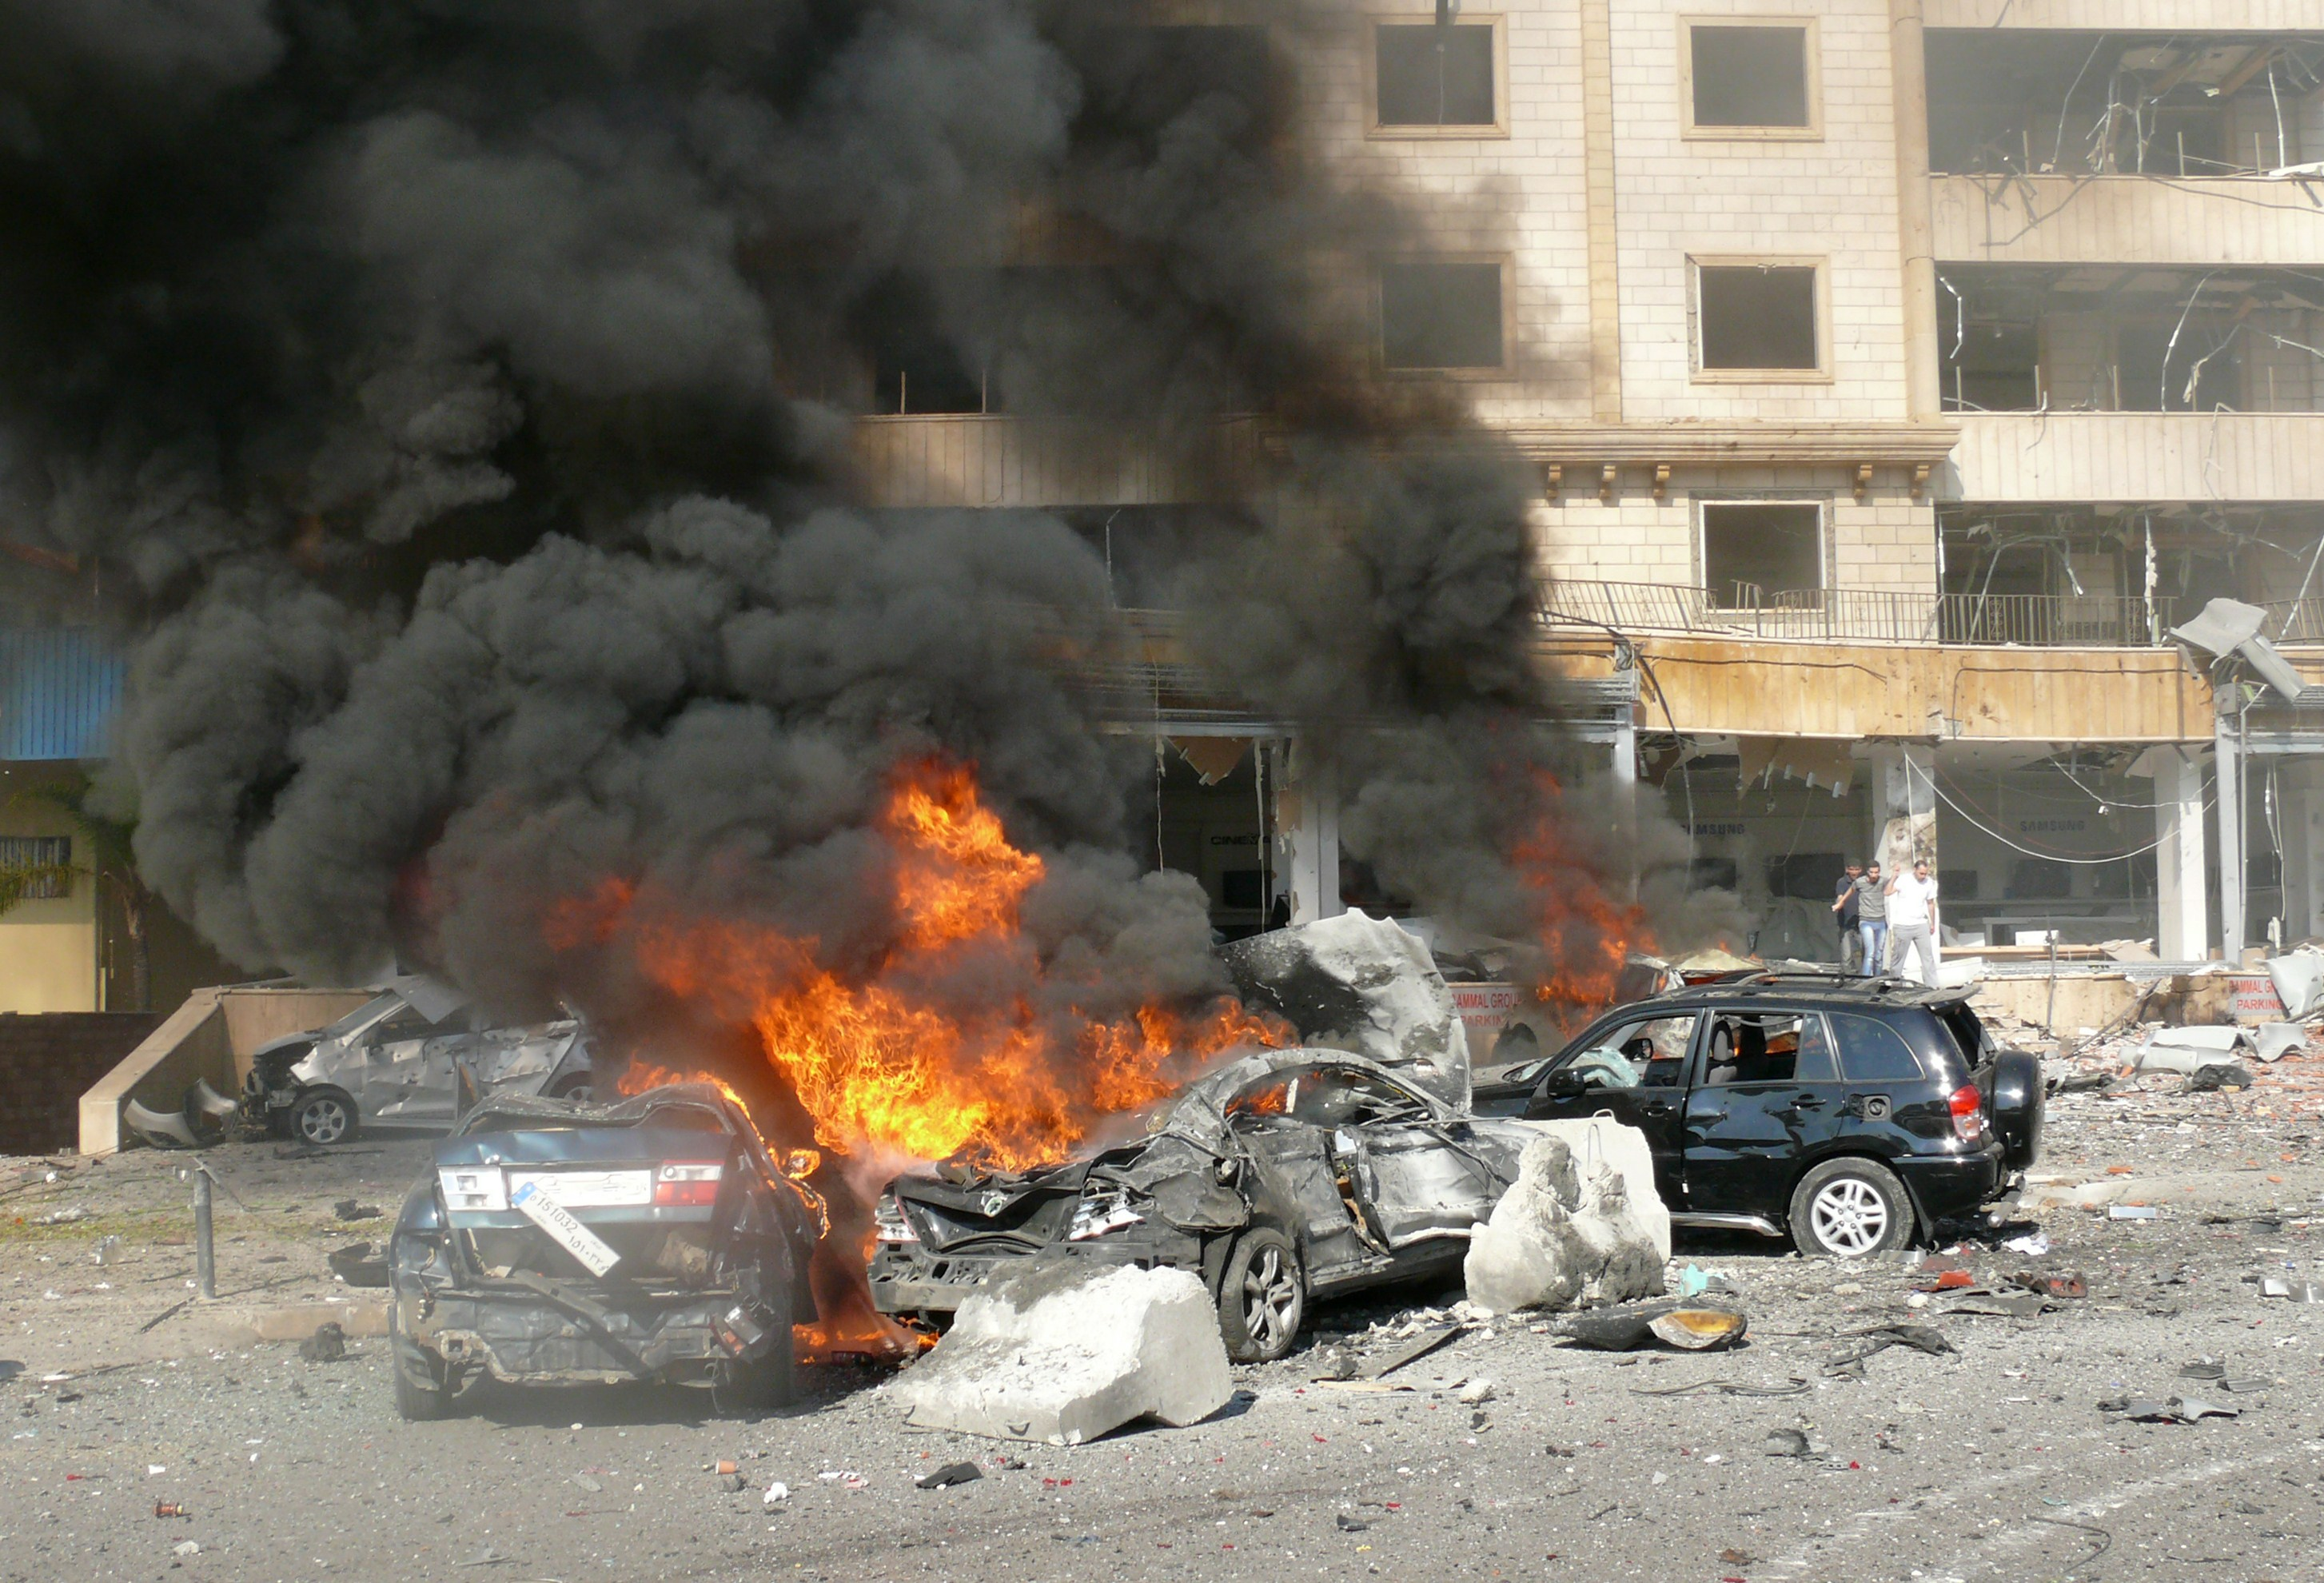 Flames rise from the wreckage of cars following a bomb explosion in a outhern suburb of the capital Beirut on February 19, 2014. Twin bomb blasts appeared to target the Iranian cultural centre, and an AFP photographer at the scene said the blasts had occurred beyond a security checkpoint at the centre, close to the building.  (AFP PHOTO / STR)